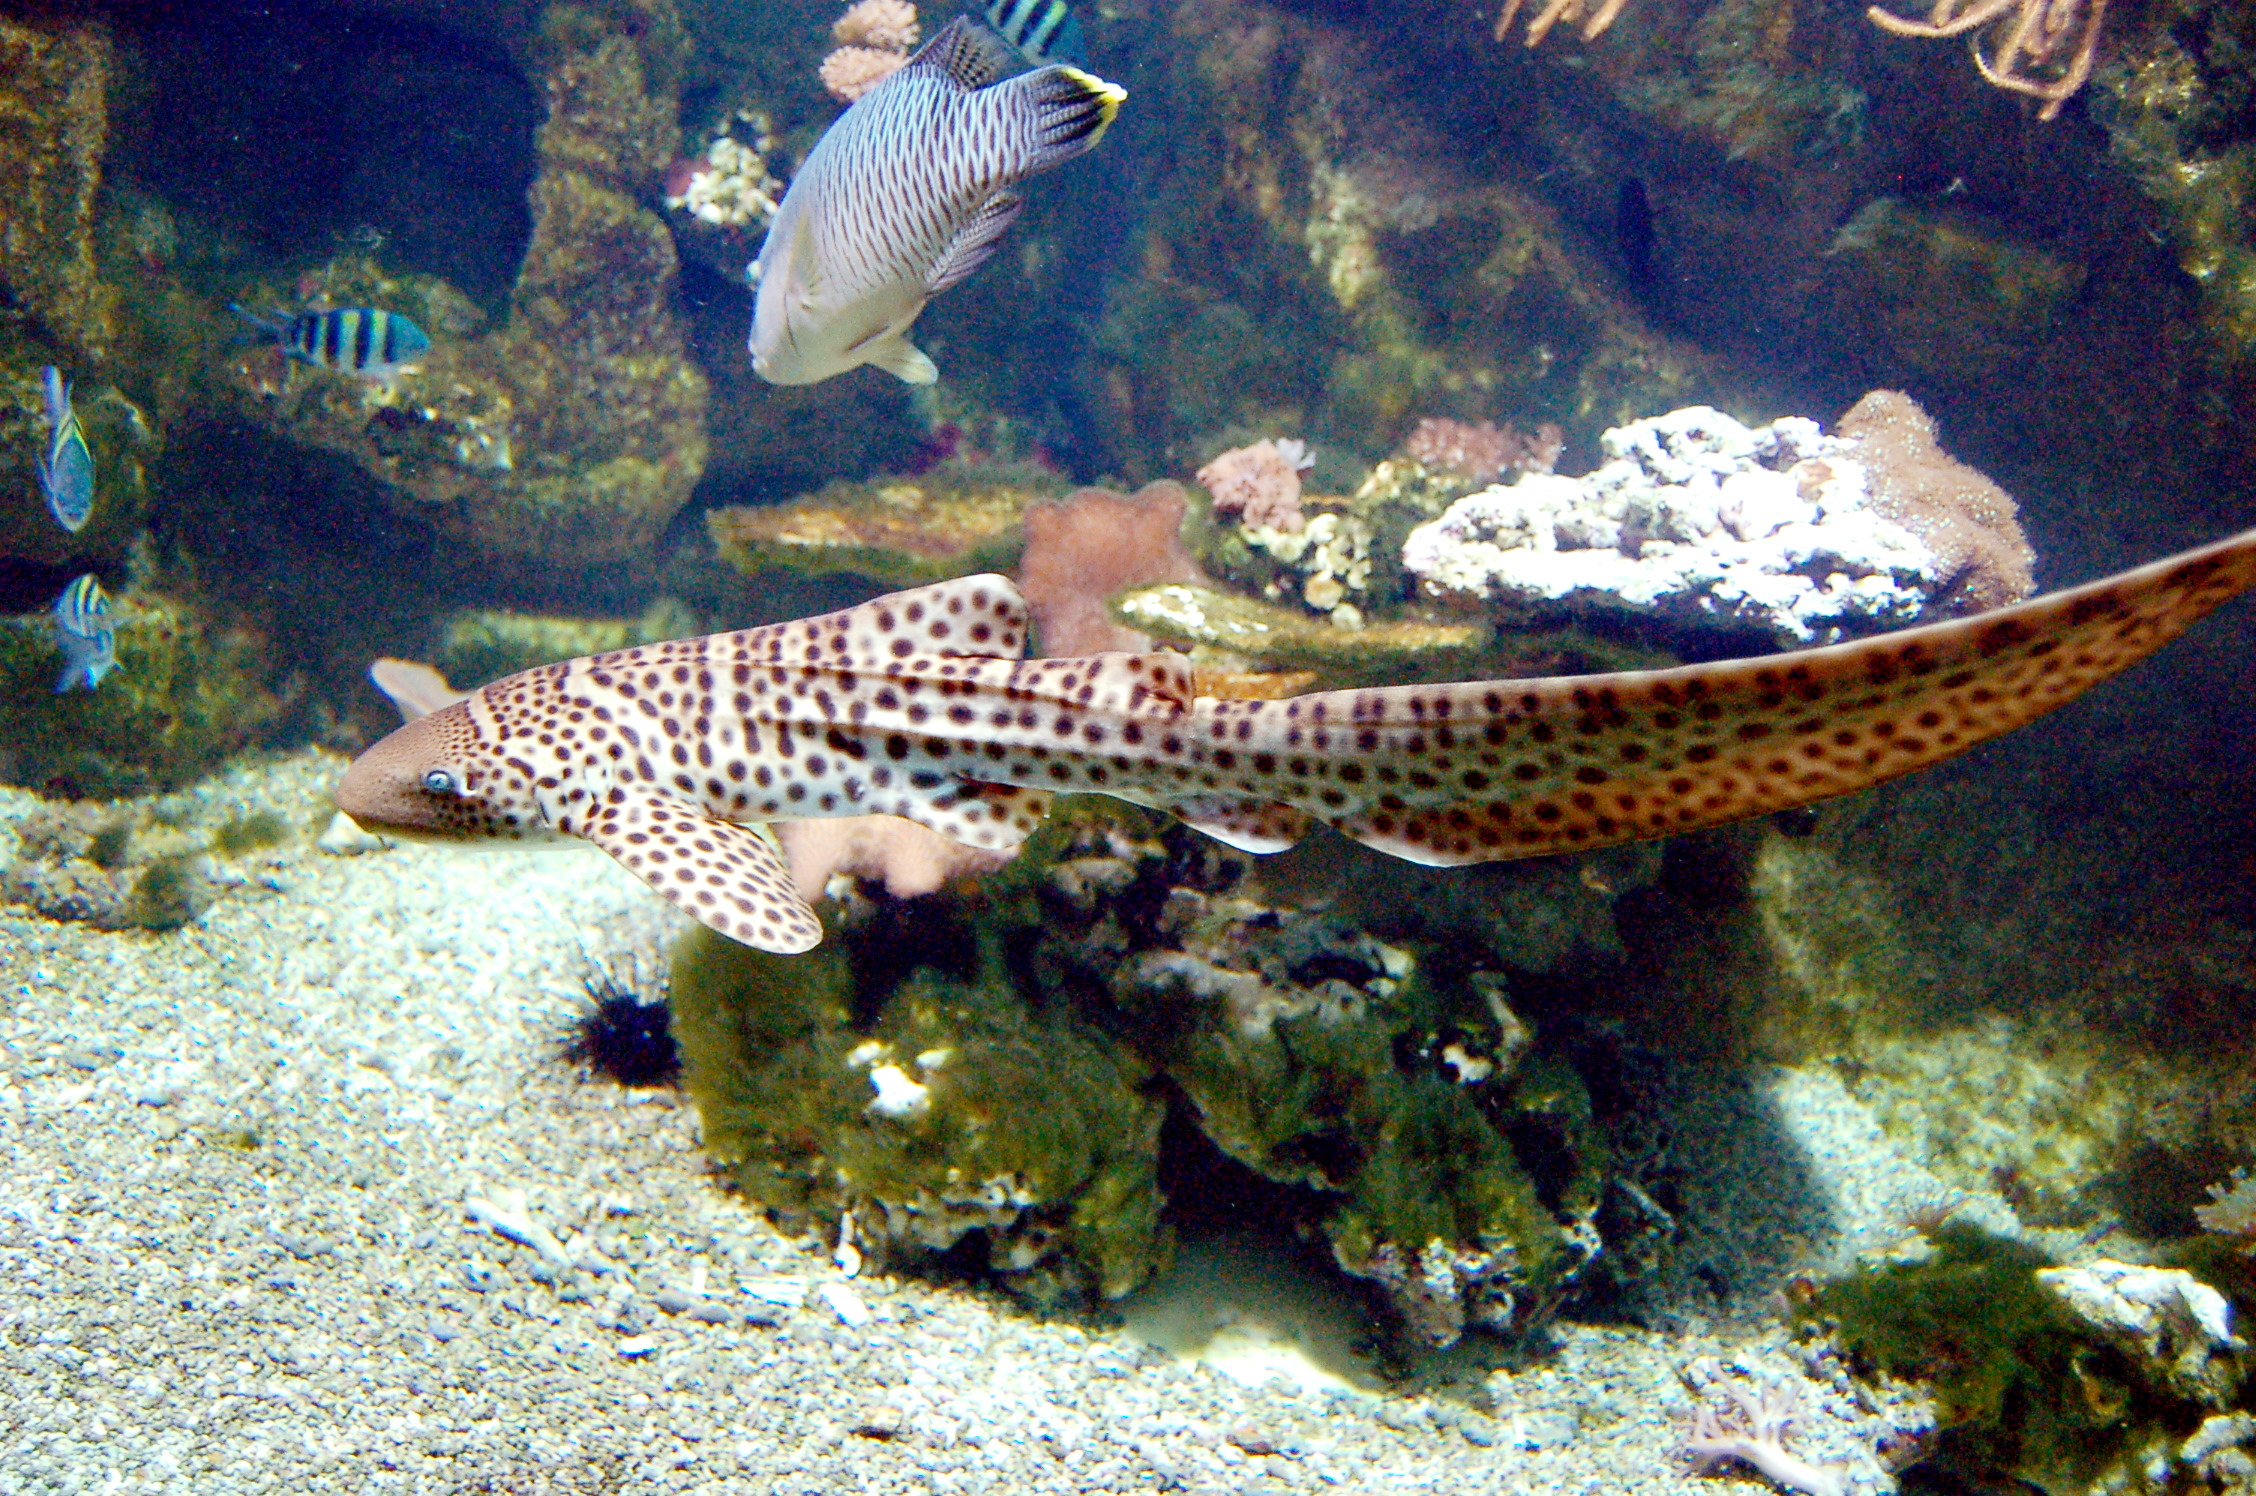 File:Aquarium tropical du Palais de la Porte Doree - Stegostoma ...